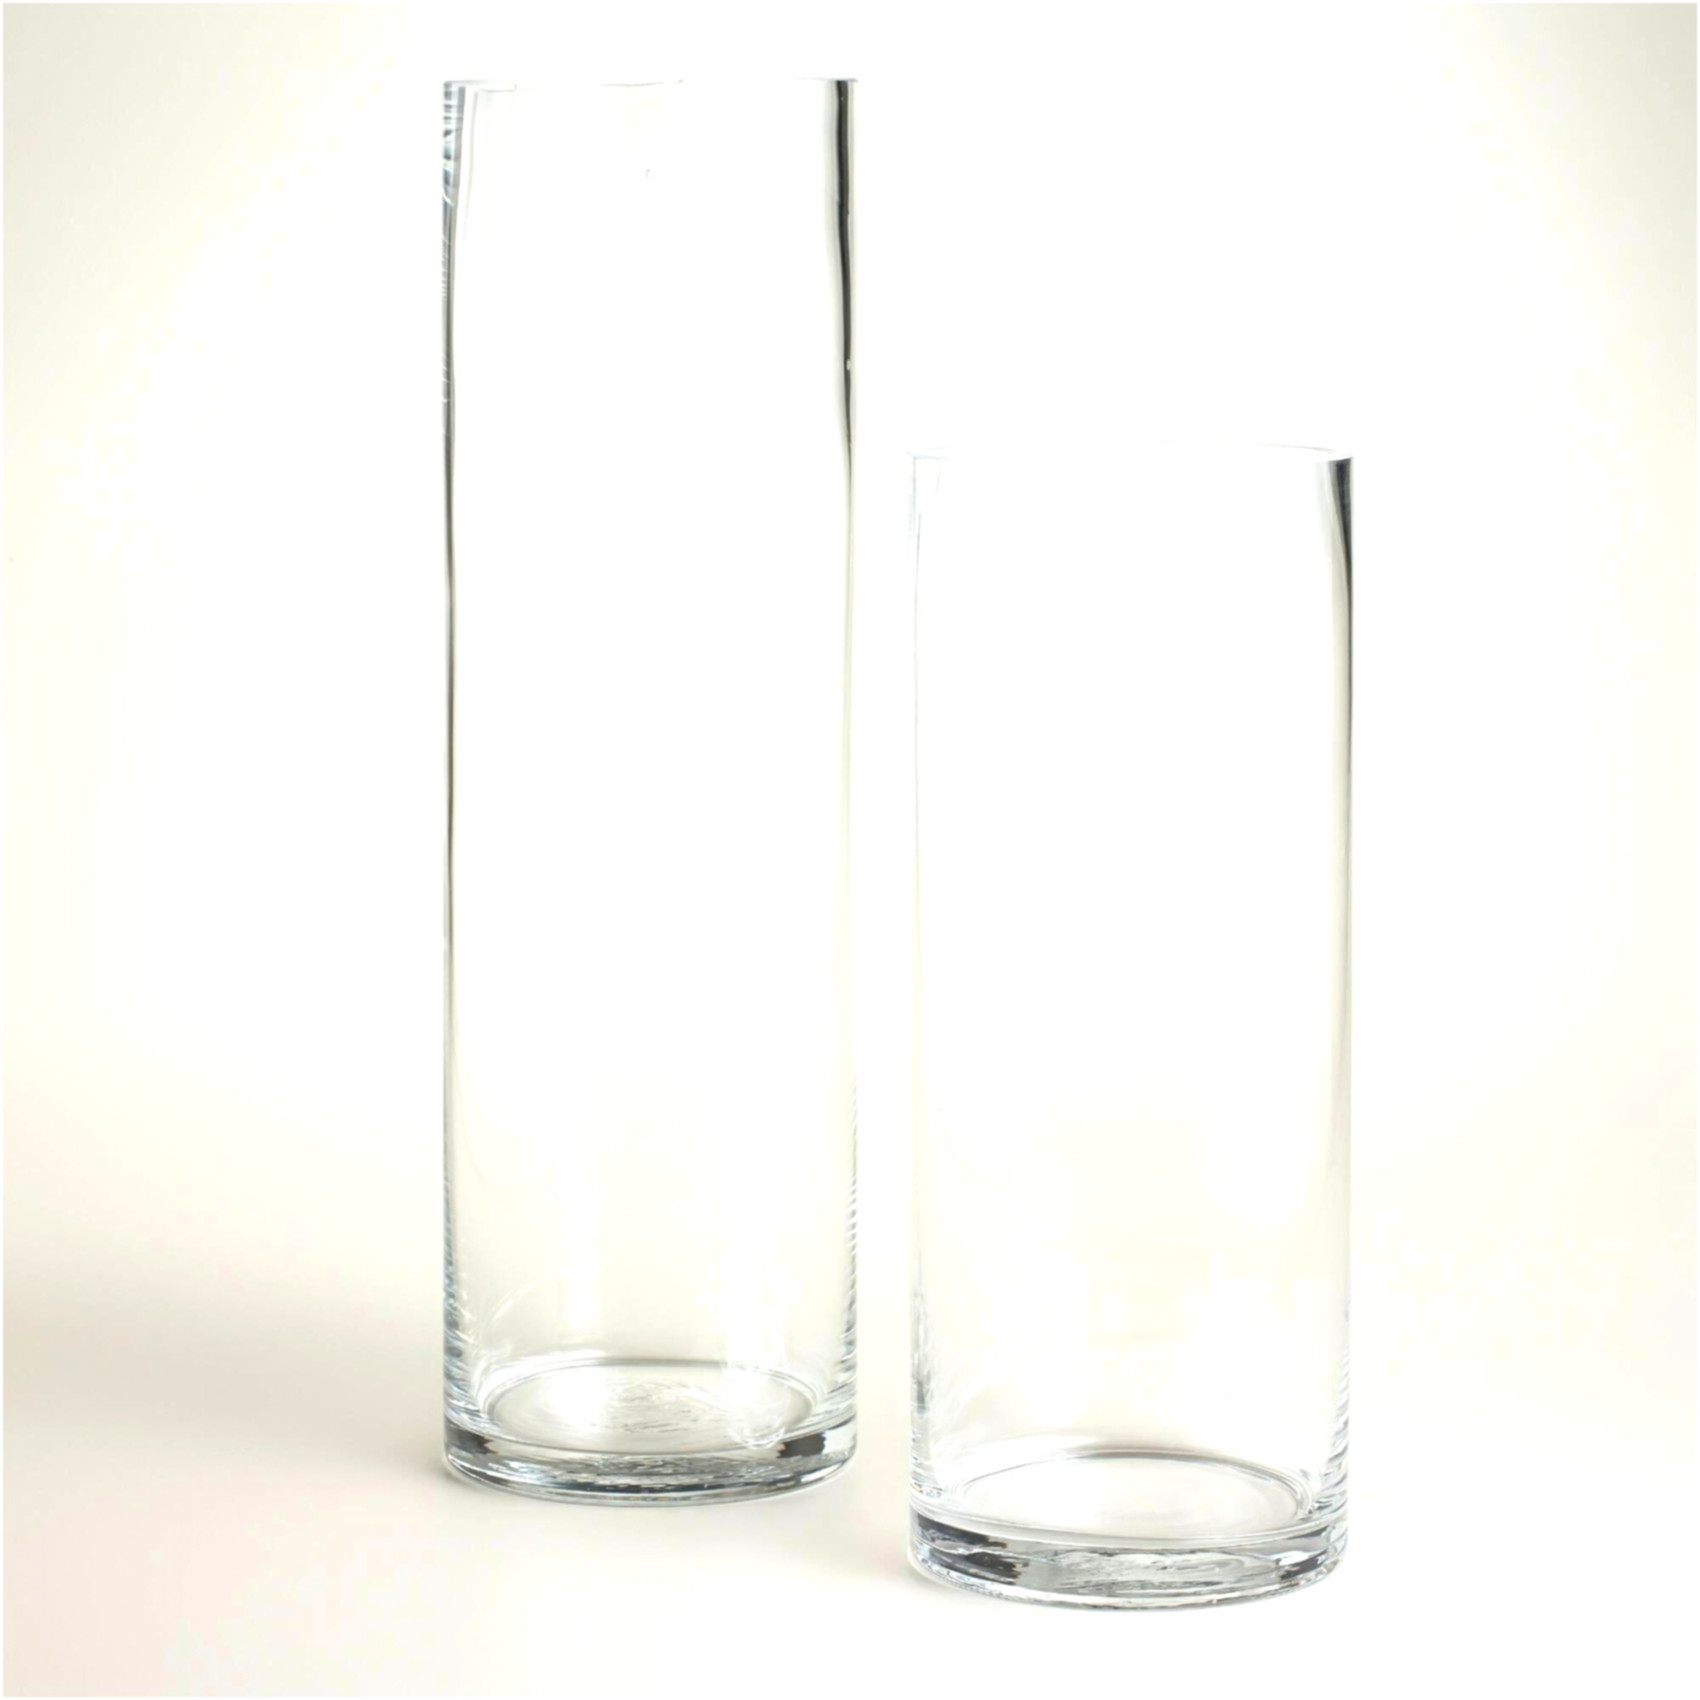 4 X 12 Cylinder Vase Of why You Should Not Go to Glass Vases wholesale Glass Vases Regarding Crystal Glass Vases wholesale Inspirational 30 Elegant Vases with